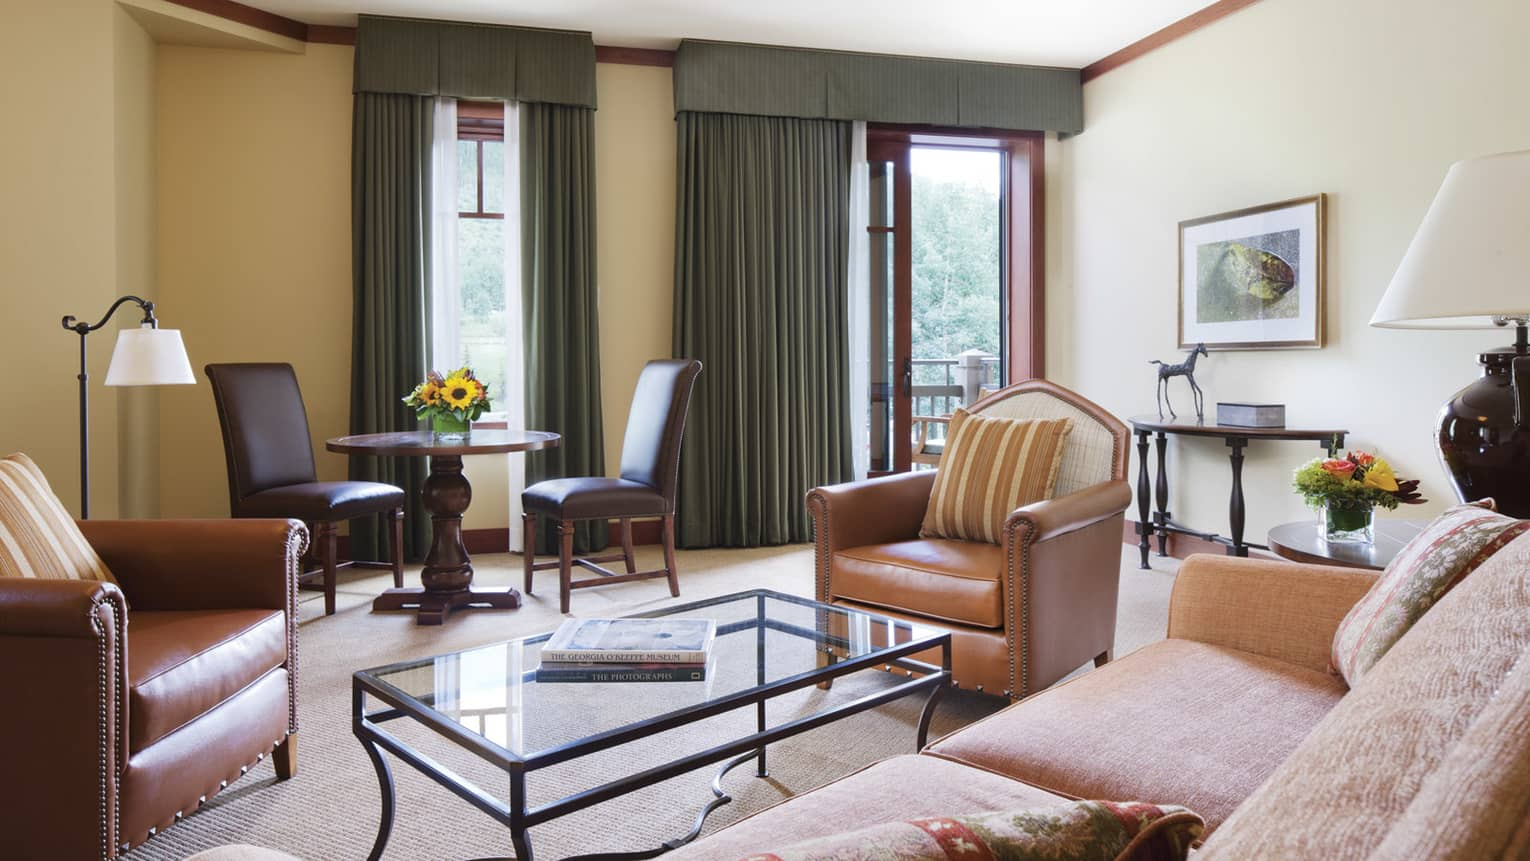 Mountain-View Executive Suite living room with sofa, glass coffee table with photo books, leather armchair